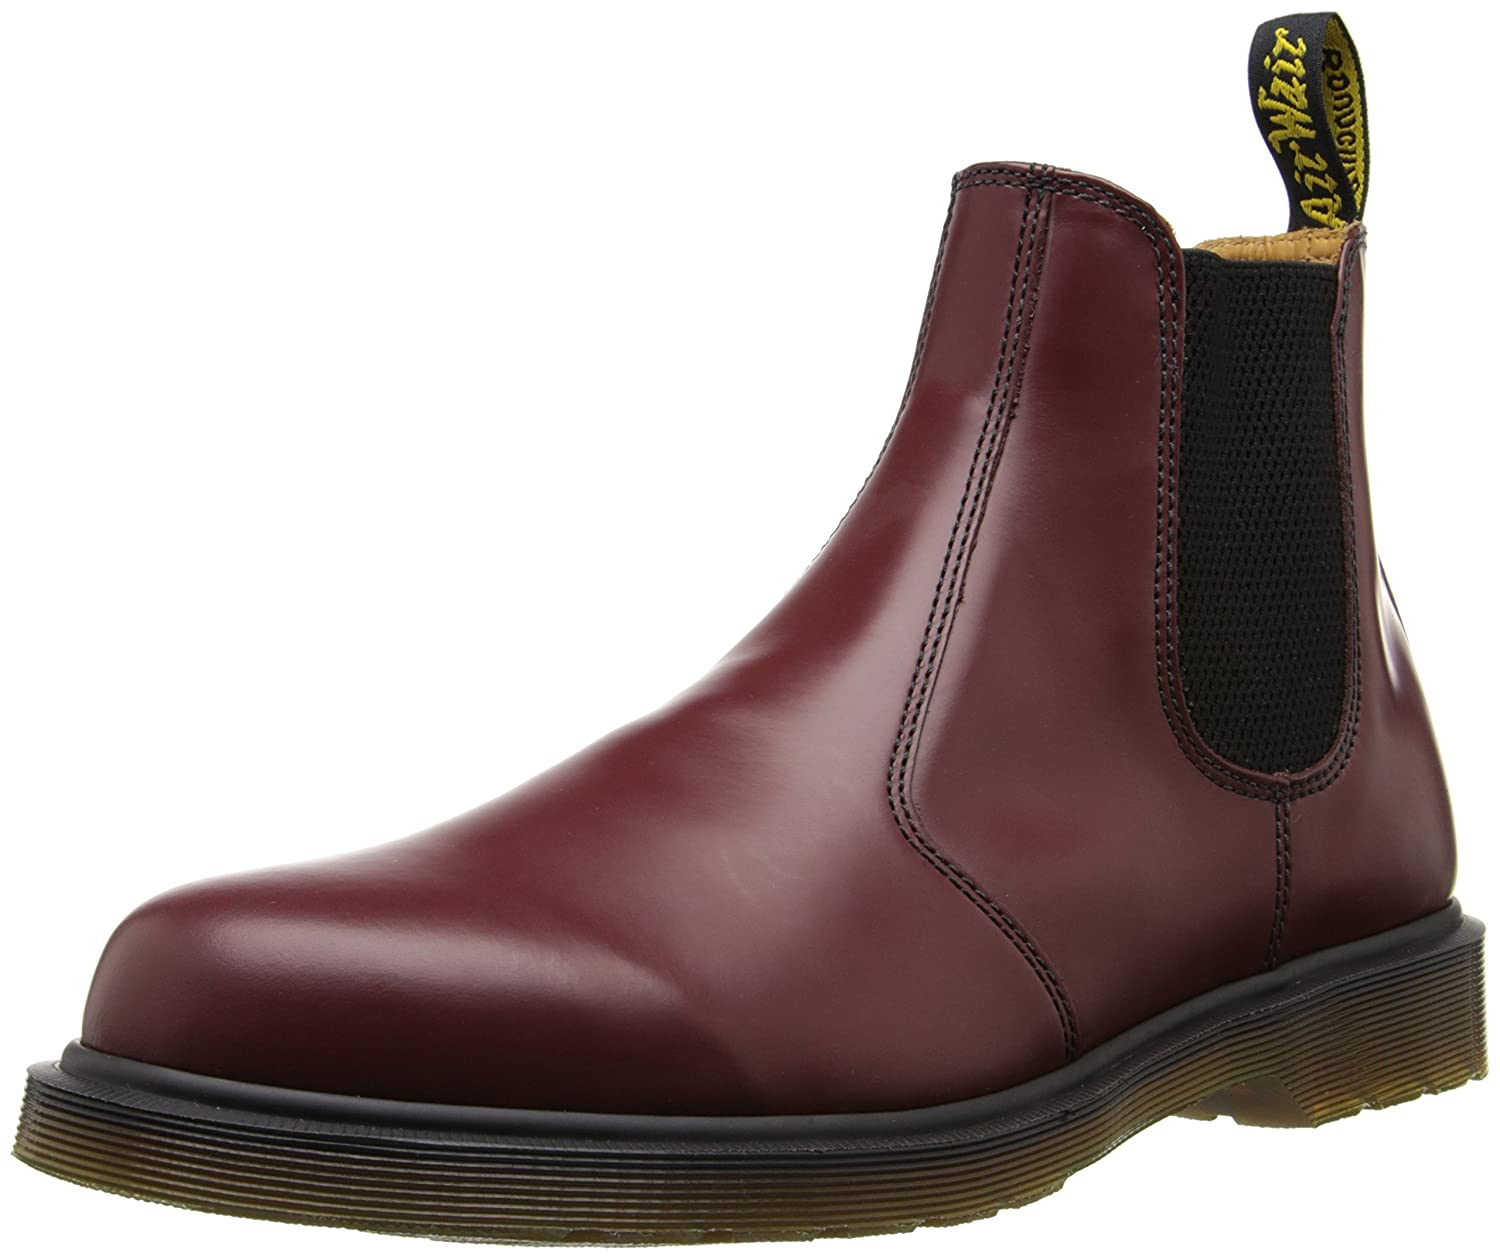 Dr. Martens Men's 2976 Boot B01ICERDBO 5 M UK / 7 B(M) US|Cherry Red